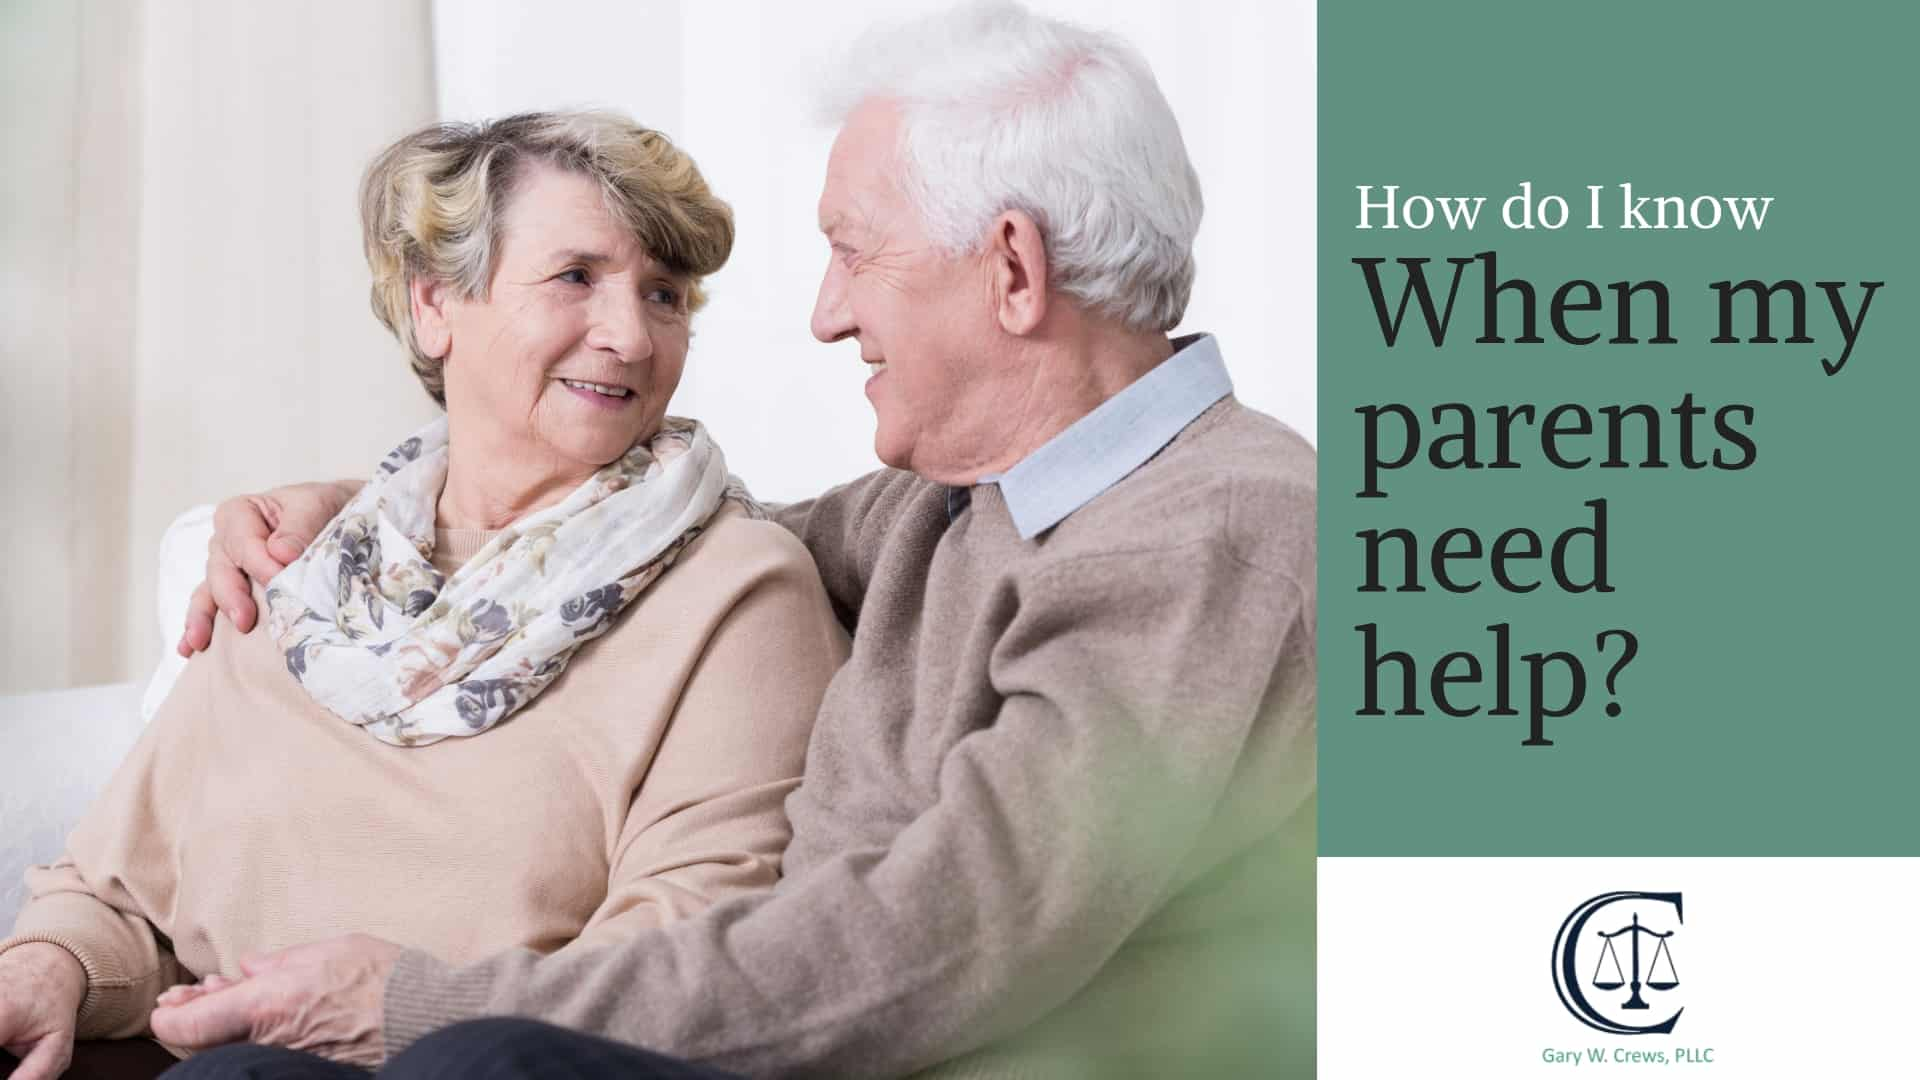 Tulsa Lawyer how do i know when my parents need help? - Assessment - How Do I Know When My Parents Need Help?